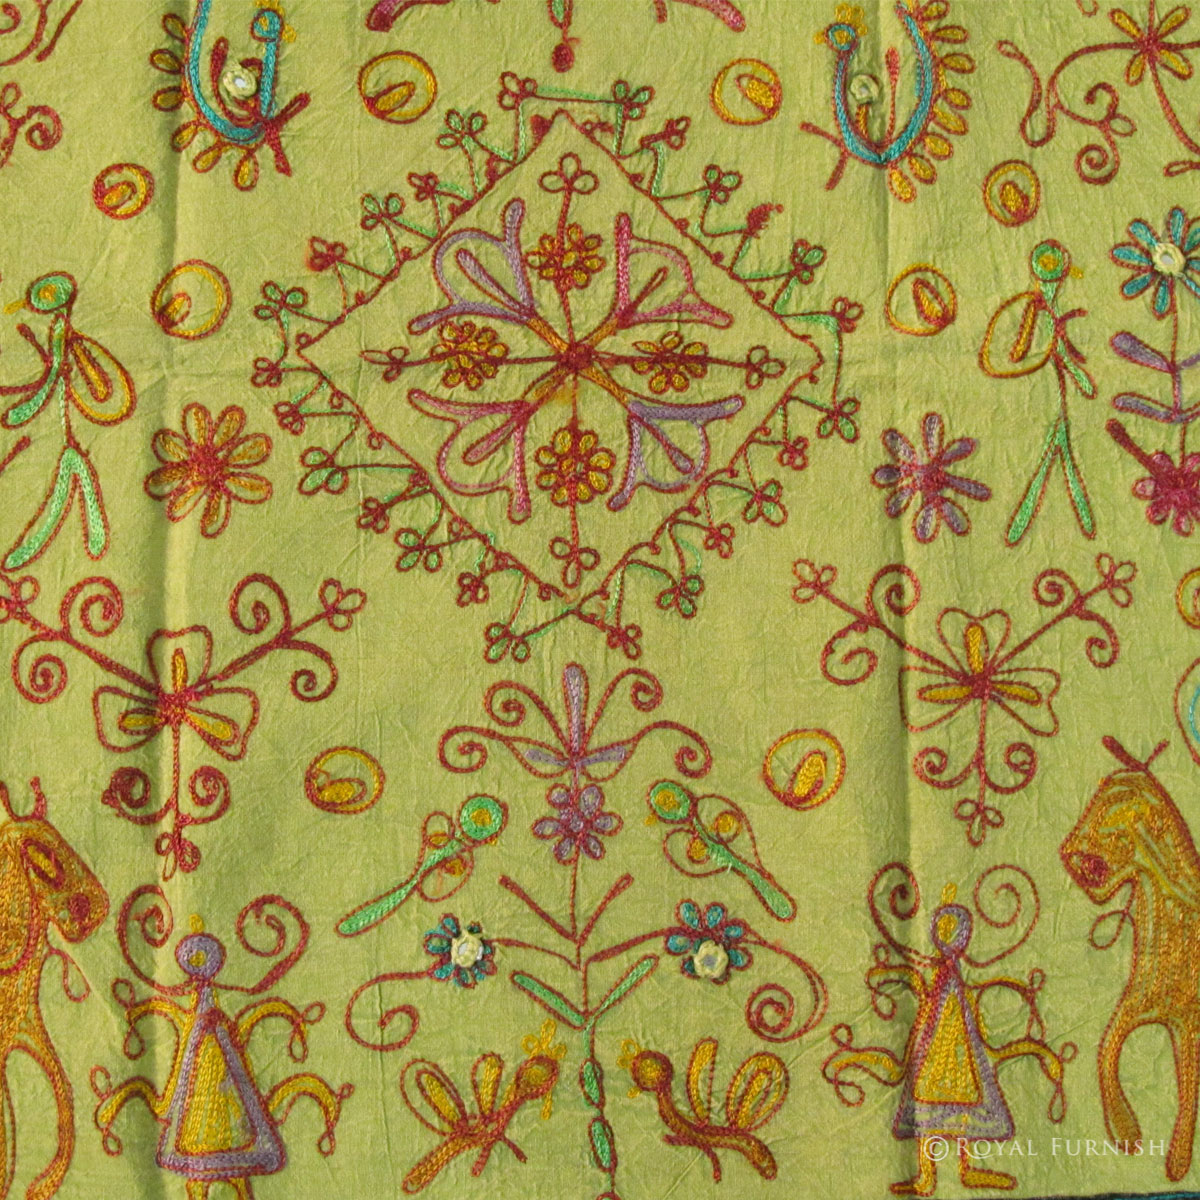 Hand Sewn Thread Embroidered Indian Cloth Wall Hanging Runner Decor ...